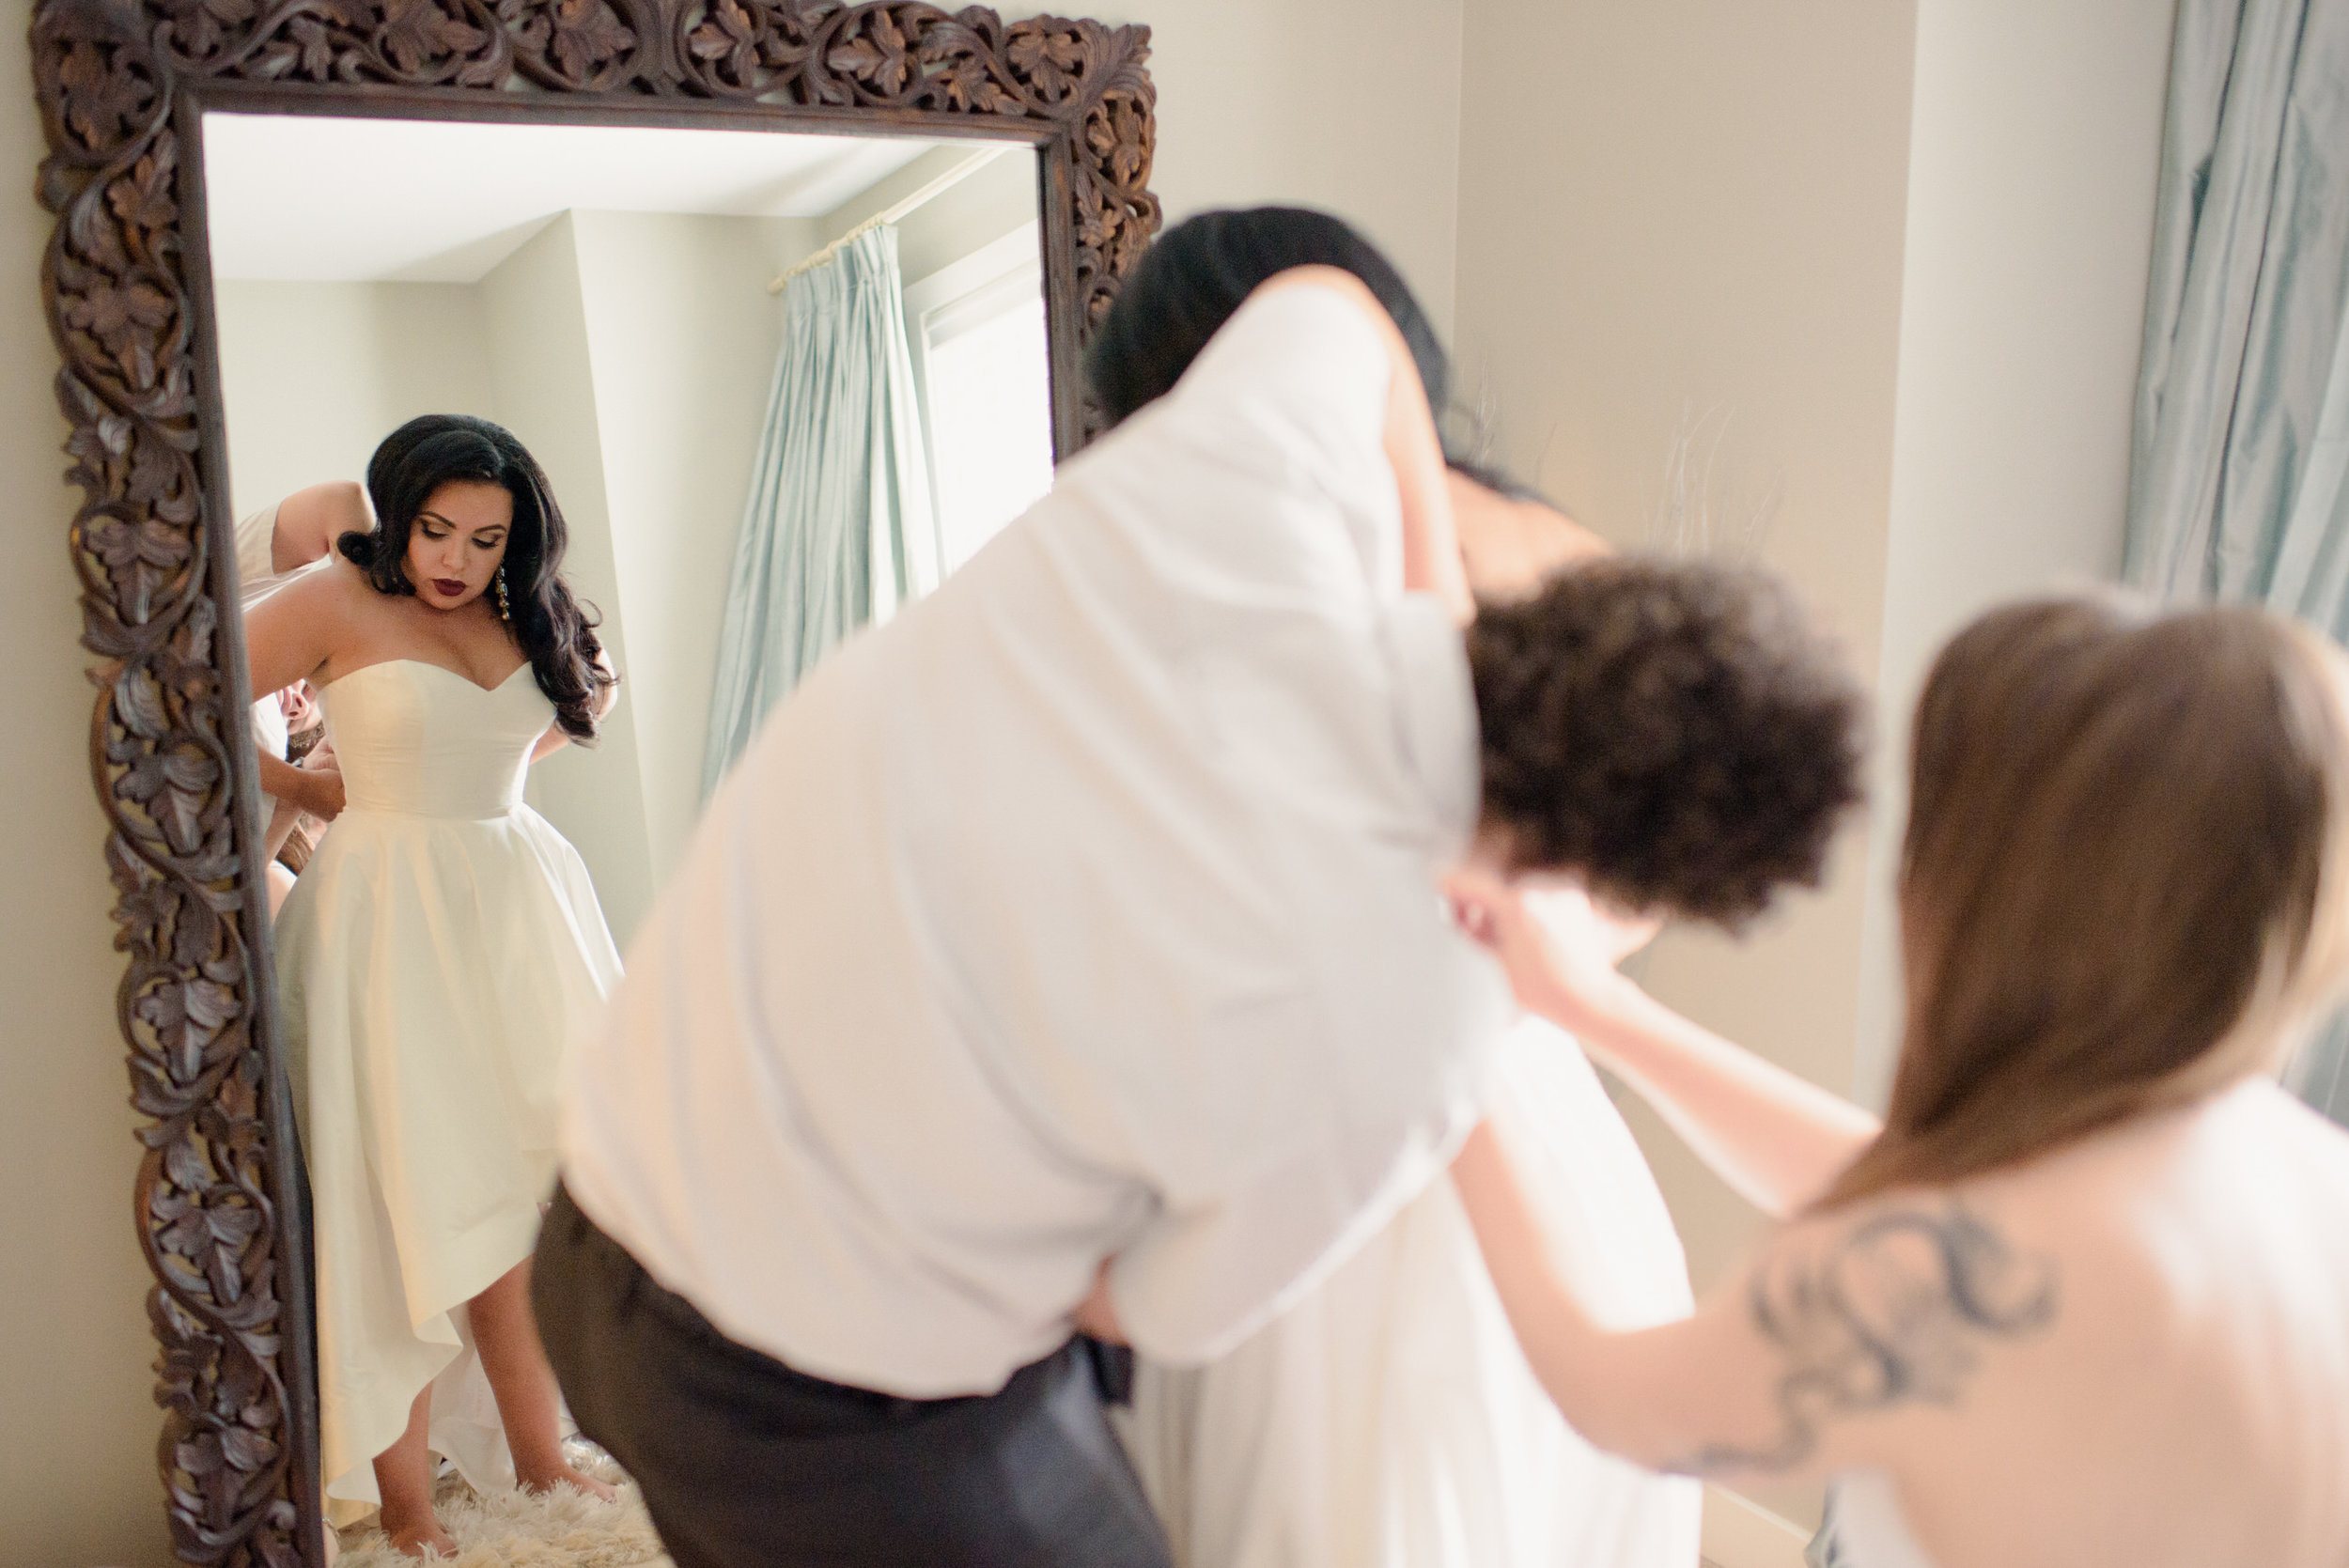 Edmonton_wedding_foundry_room_andrea_michael_calgary-engagement-05.jpg